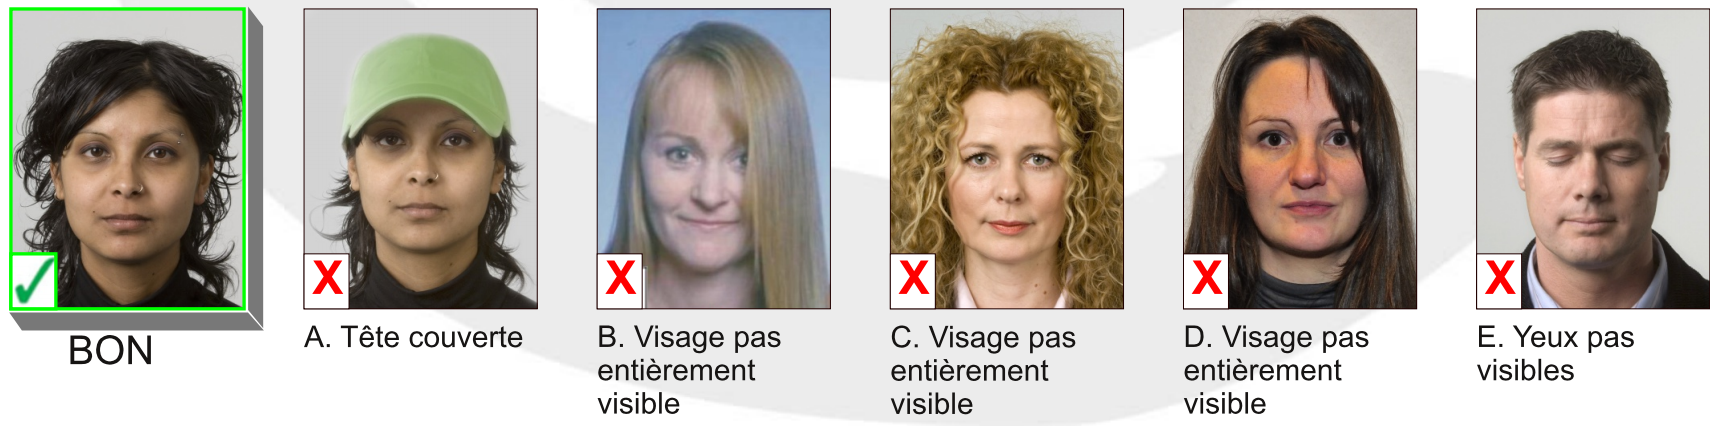 Belgium passport photo